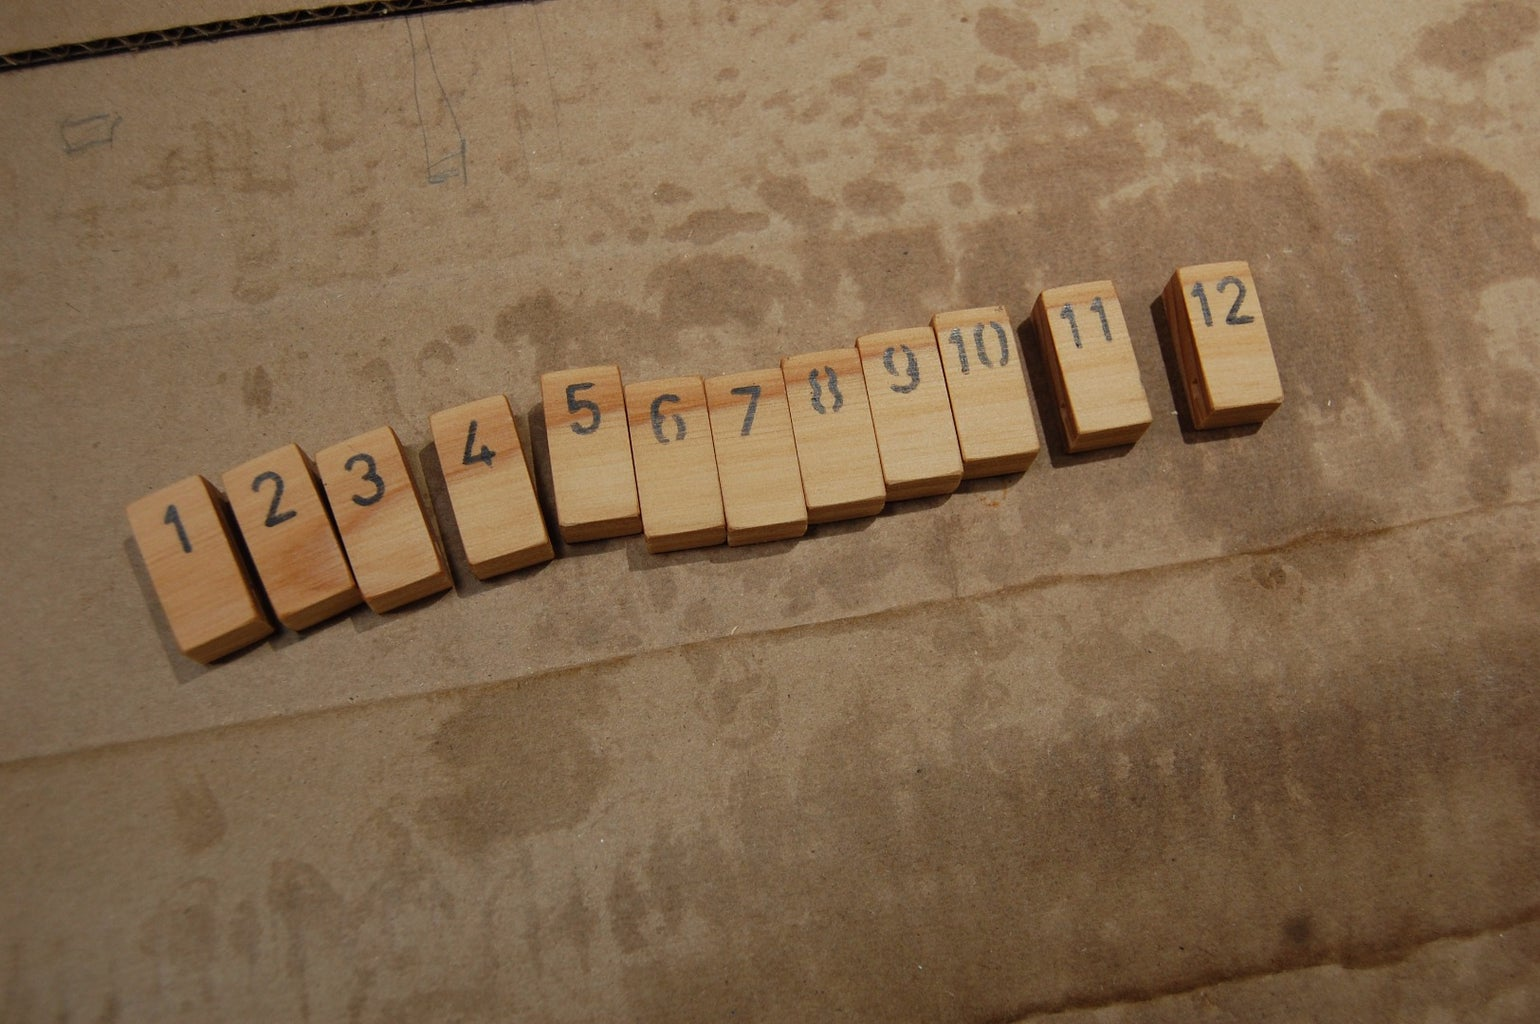 Numbering the Tiles